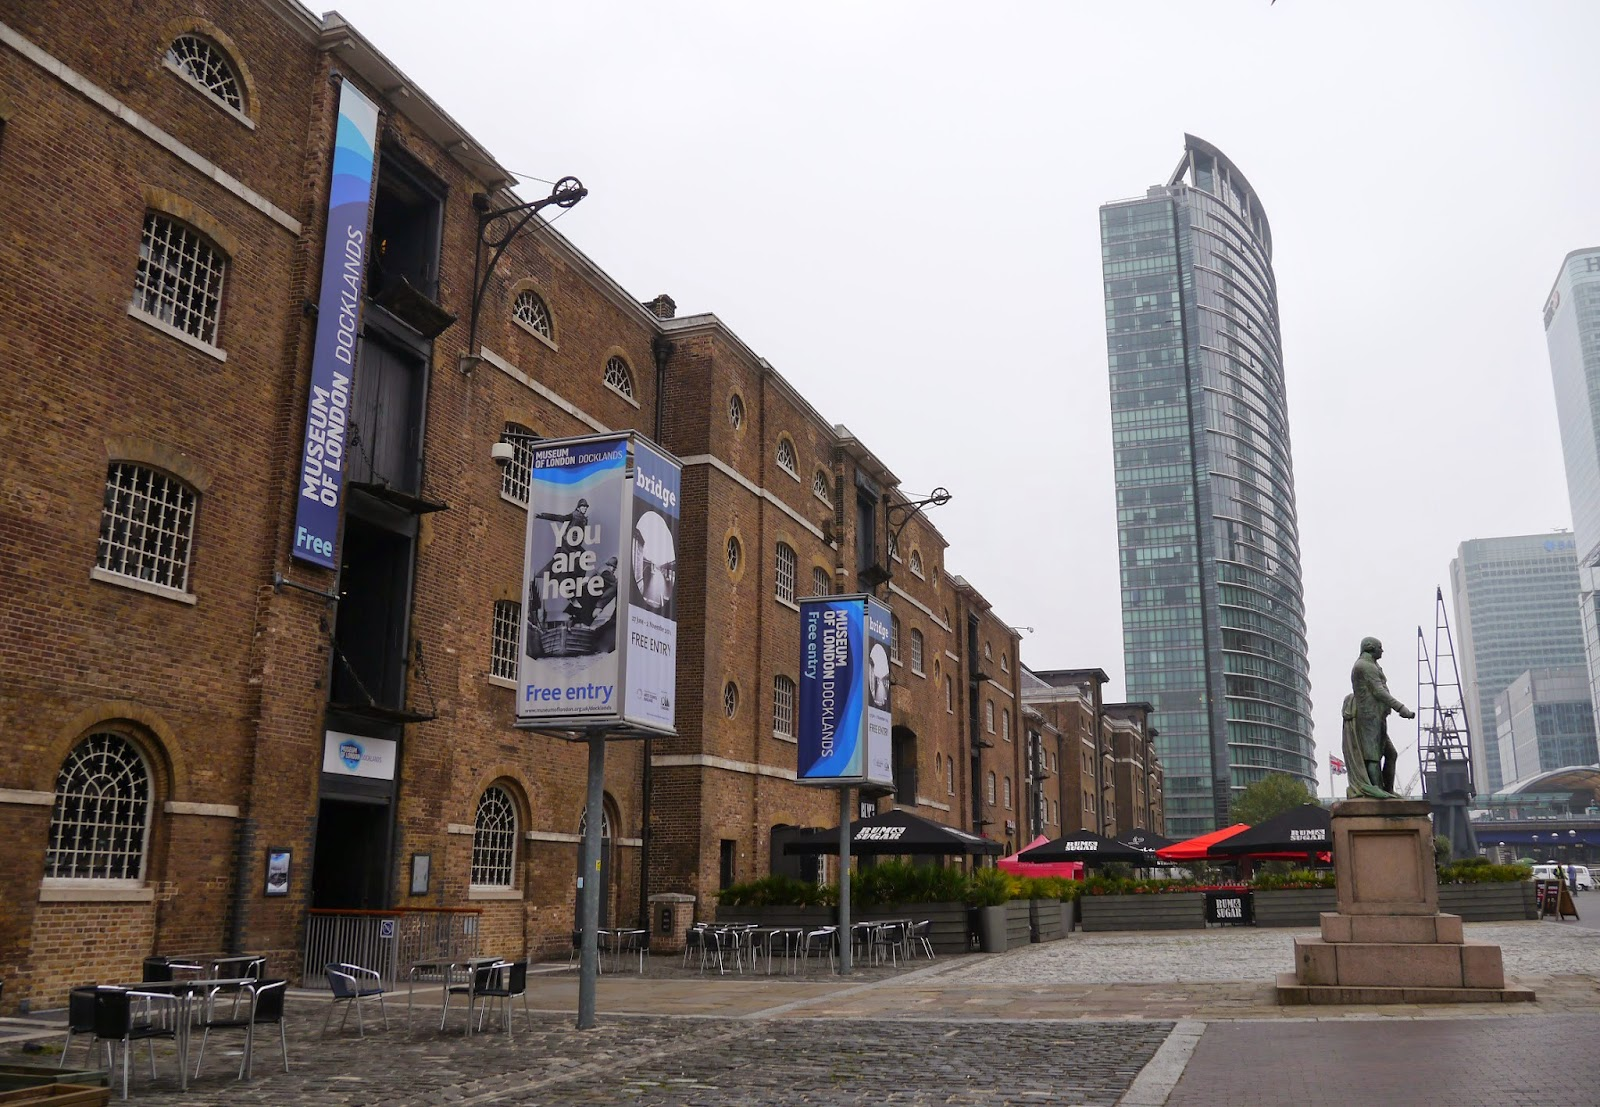 london docklands essay London docklands case study: london 1981: after world war ii the population was in decline die to people moving out fro a quieter life unemployment was at 60% amongst adult males.